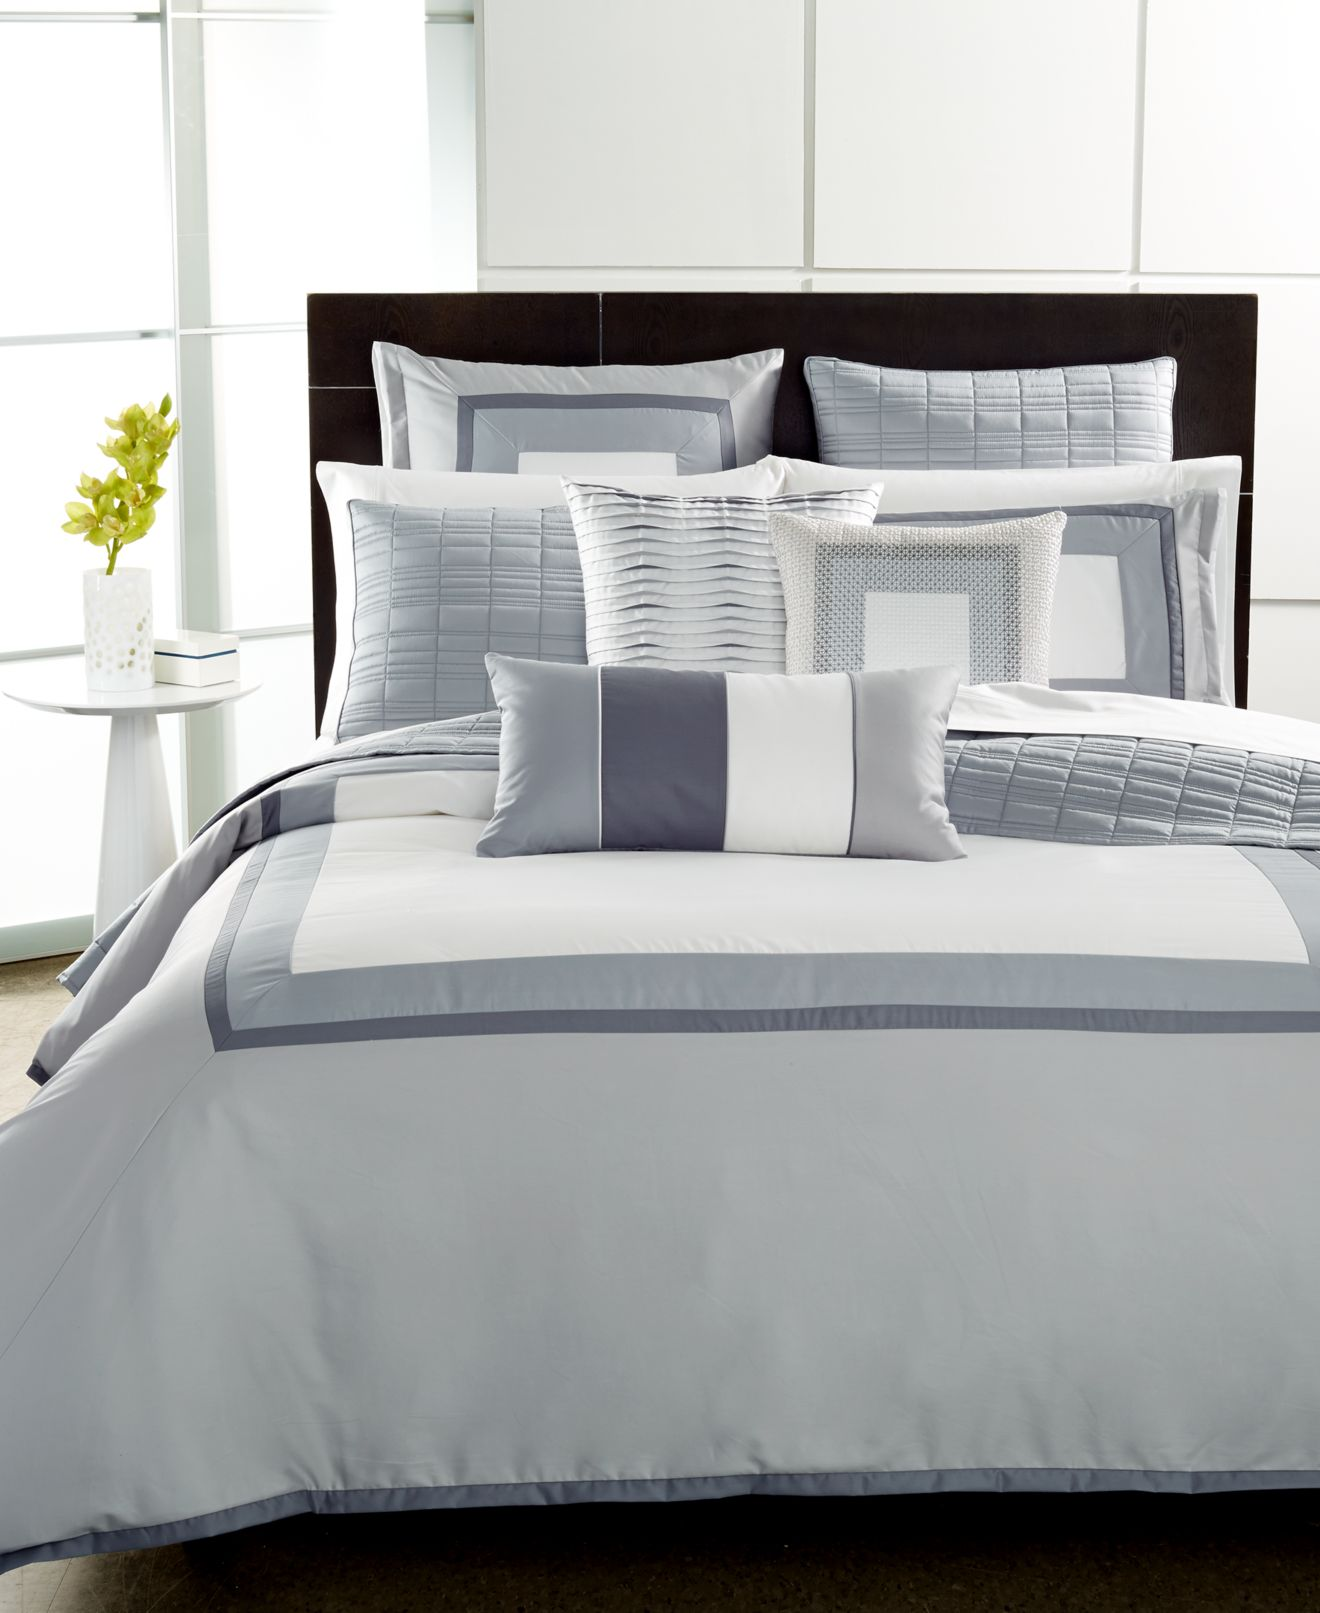 Hotel Bedding hotel collection bedding collections - macy's